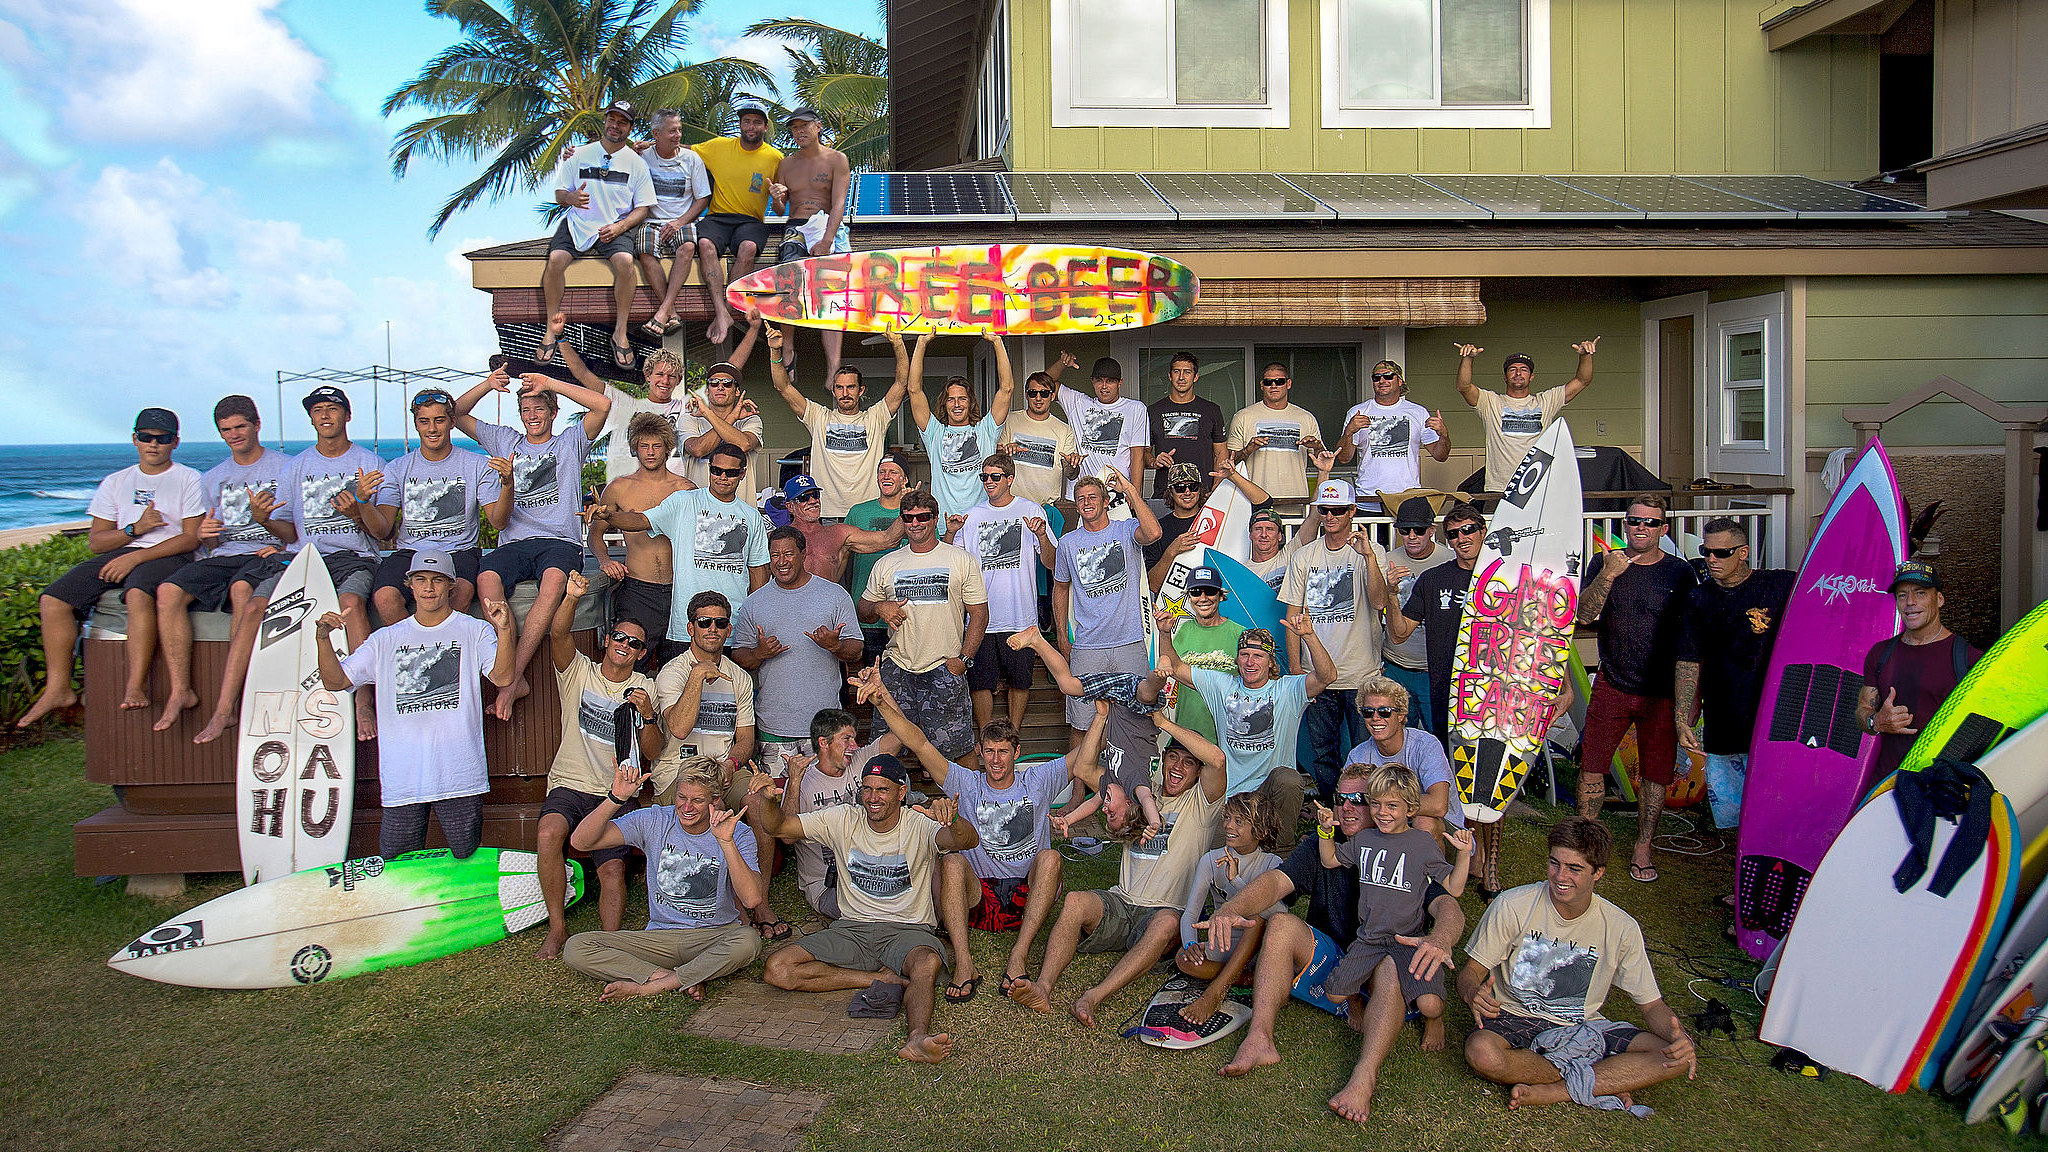 Amassing for Herbie Fletcher's Wave Warrior group photo brought some of the world's best surfers together on the North Shore this winter.